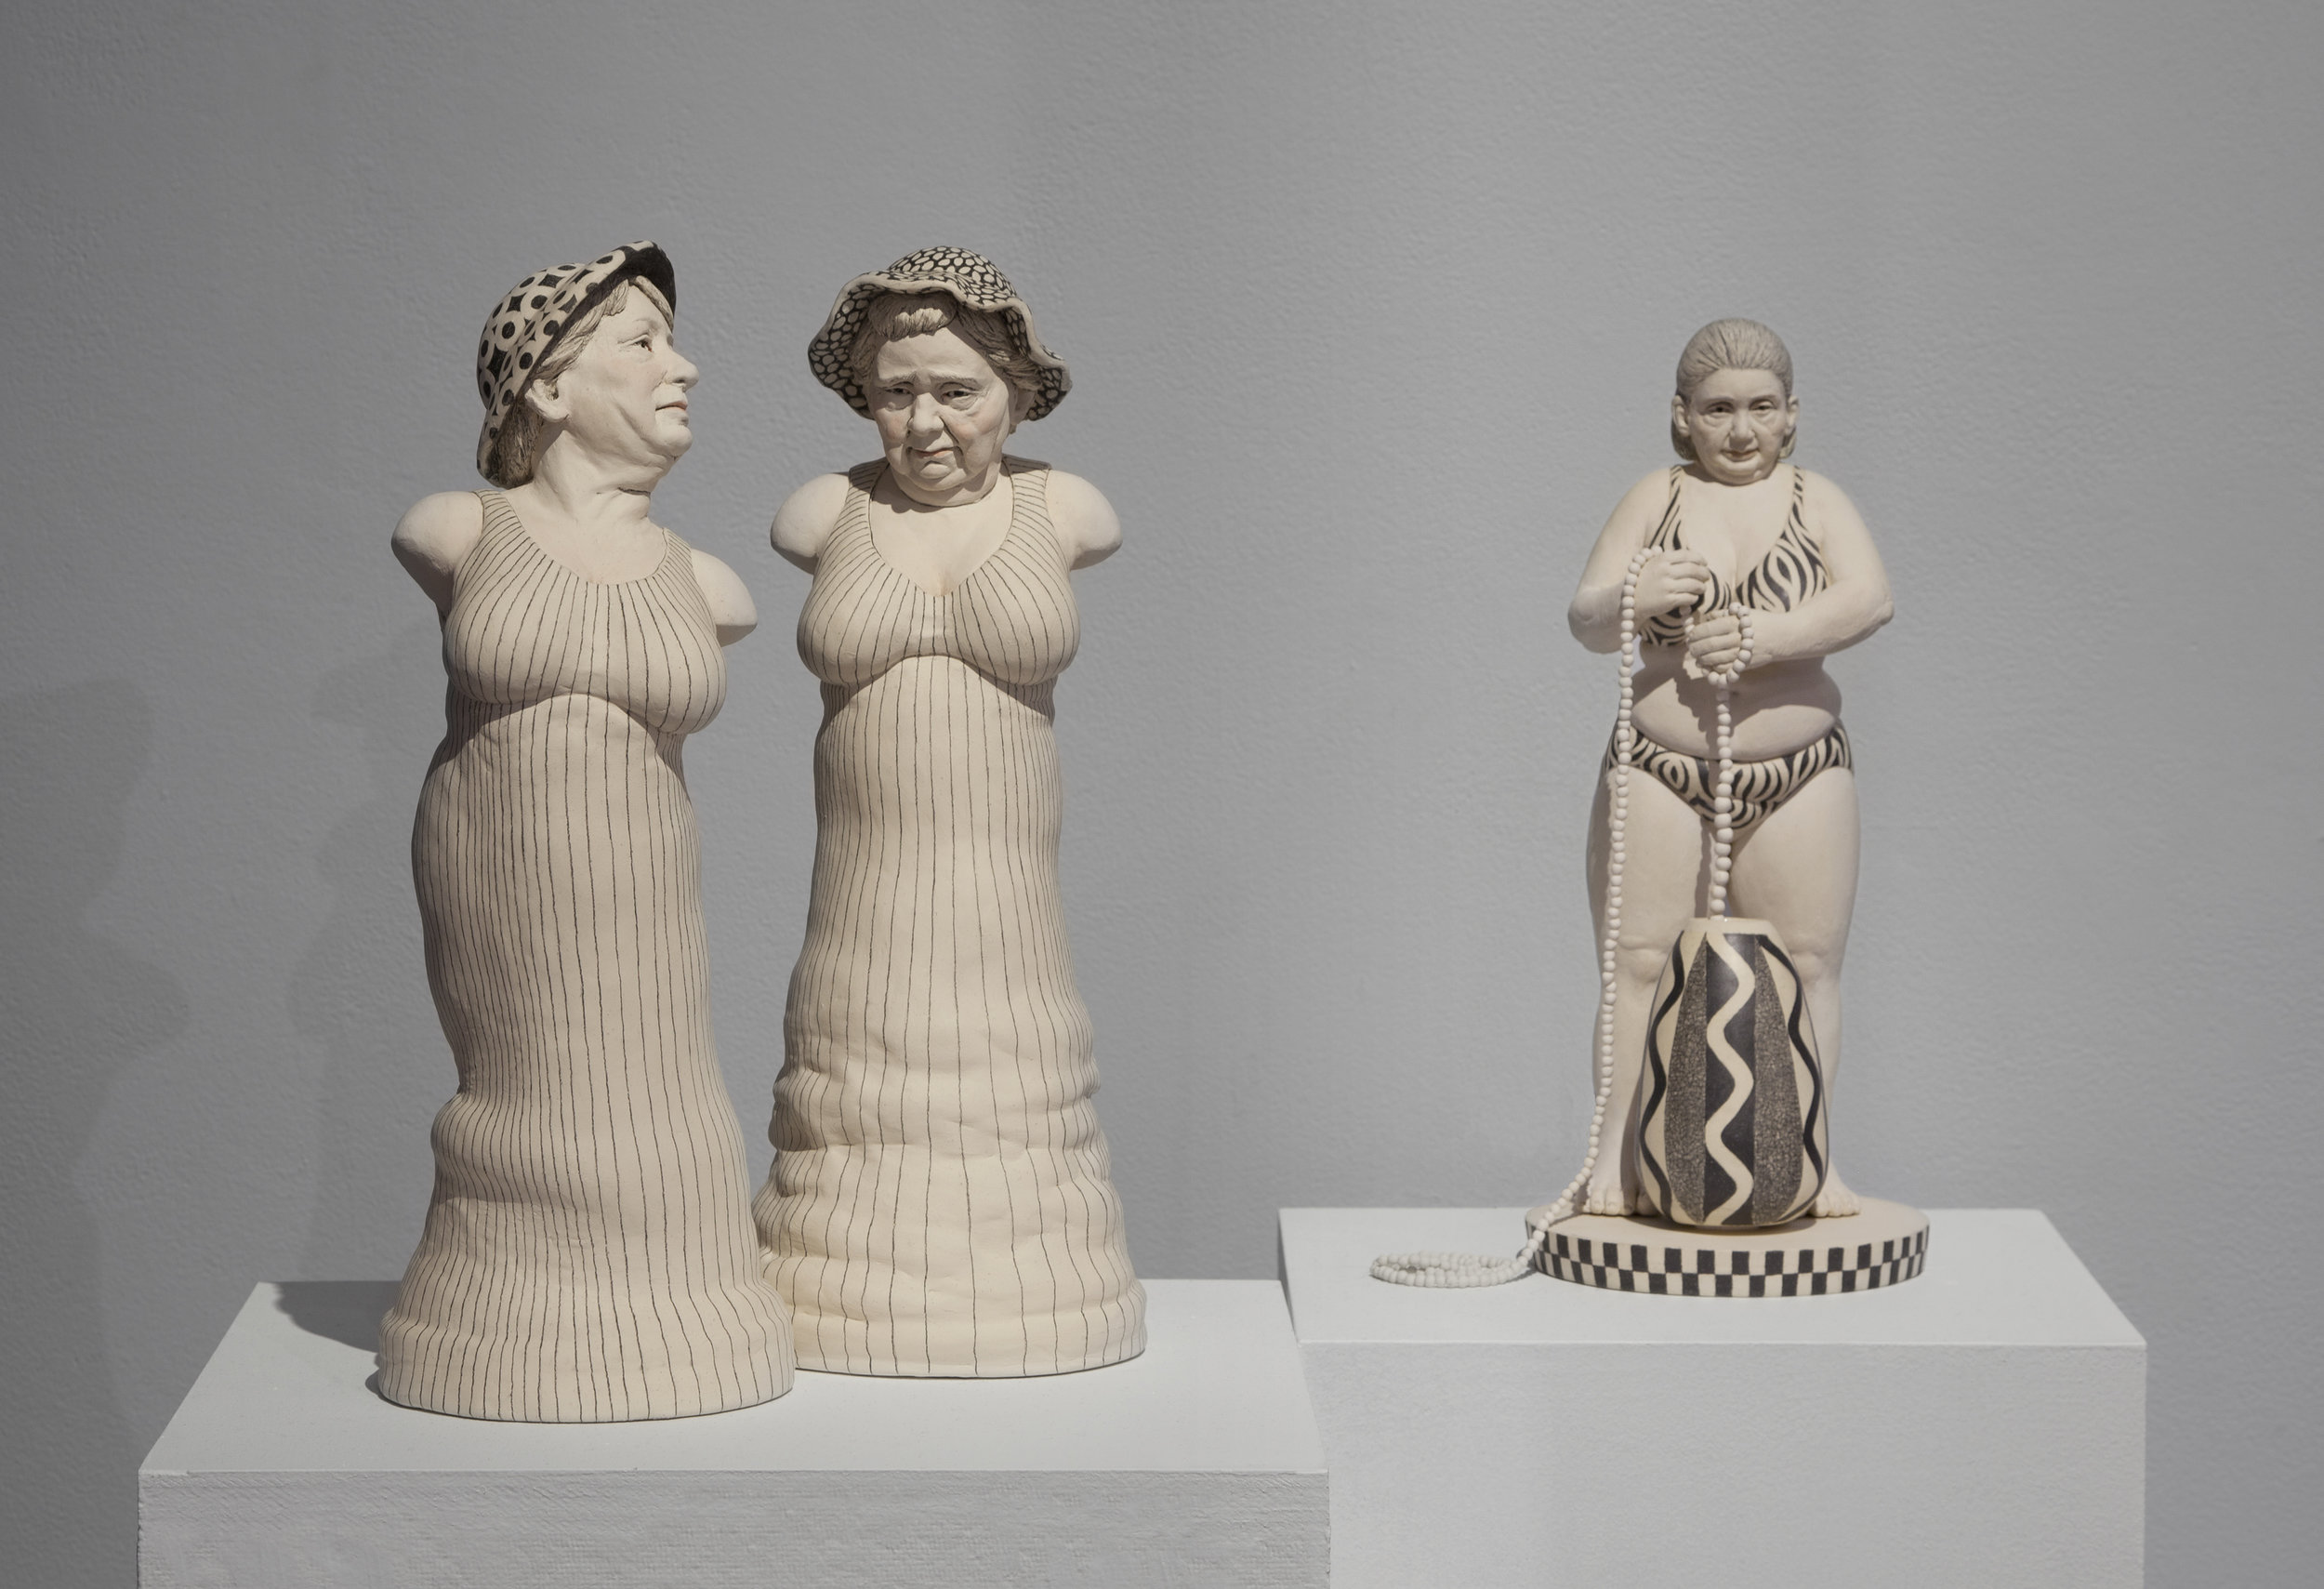 """A Confidence between Friends (left)  stoneware, graphite pencil  2 figures, 16"""" high  $1,800"""